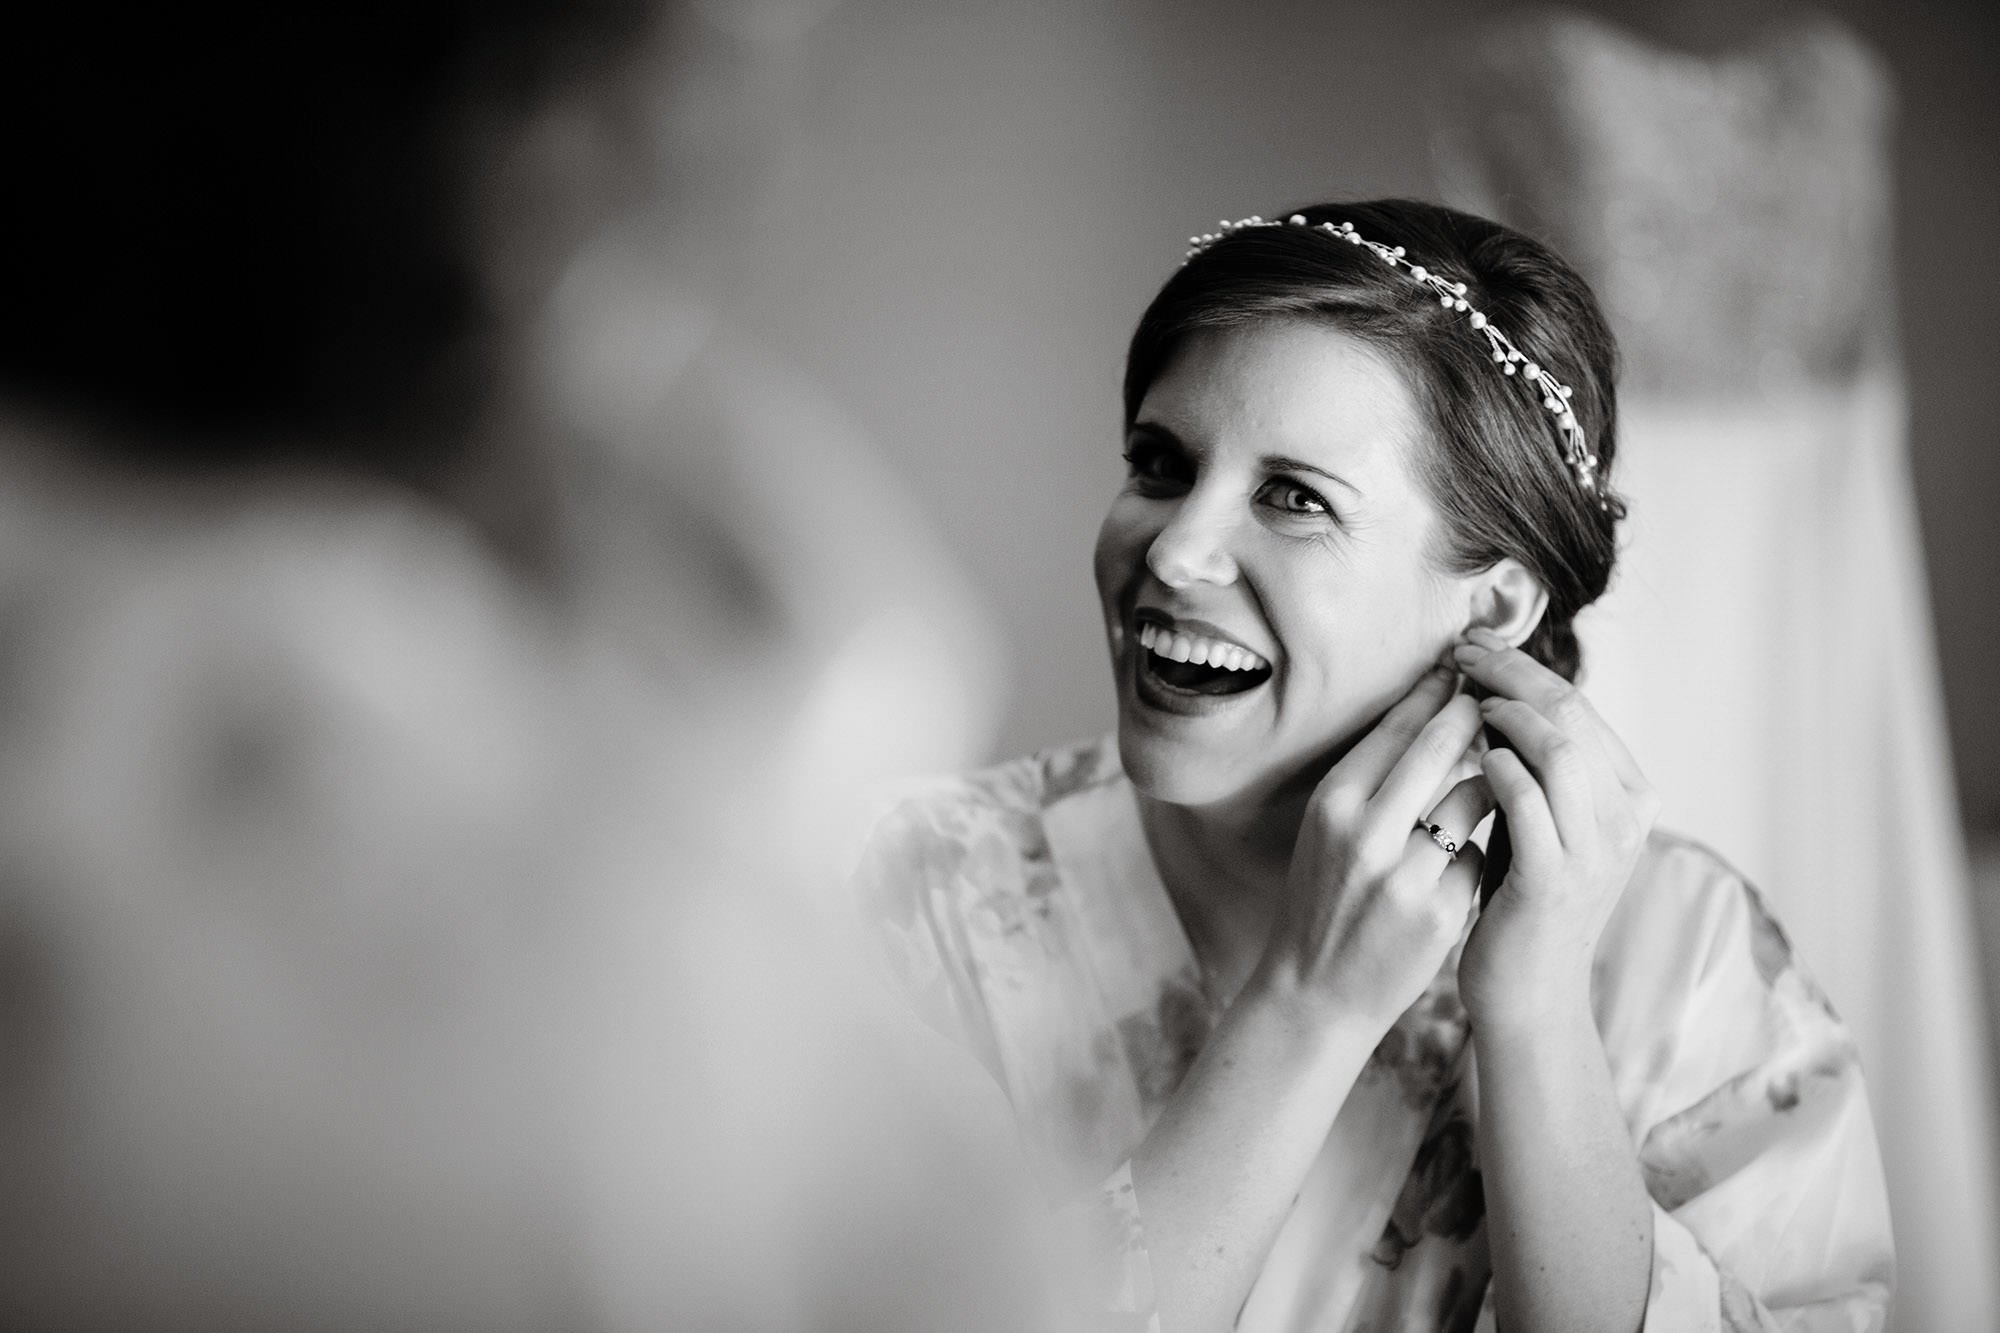 The Bride gets ready prior to her wedding ceremony.